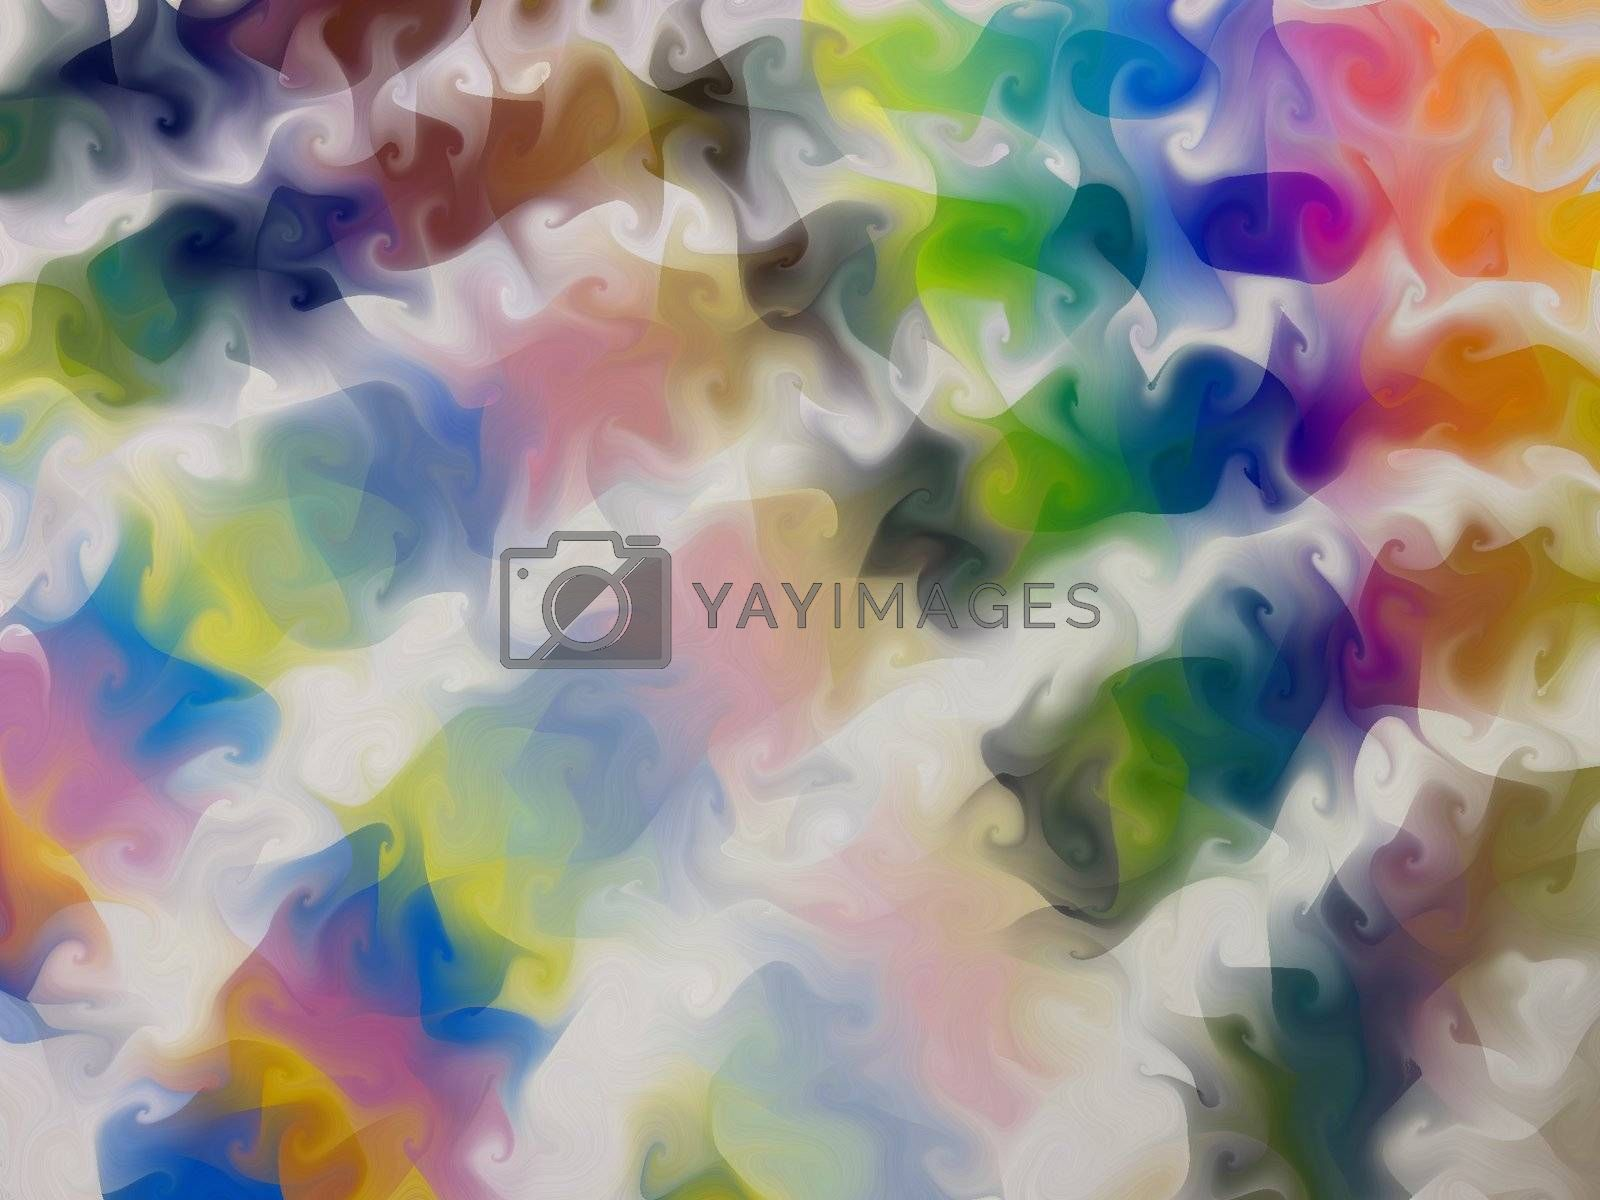 A swirly, rainbow background- originally an image of the pantone guide, all spread out.